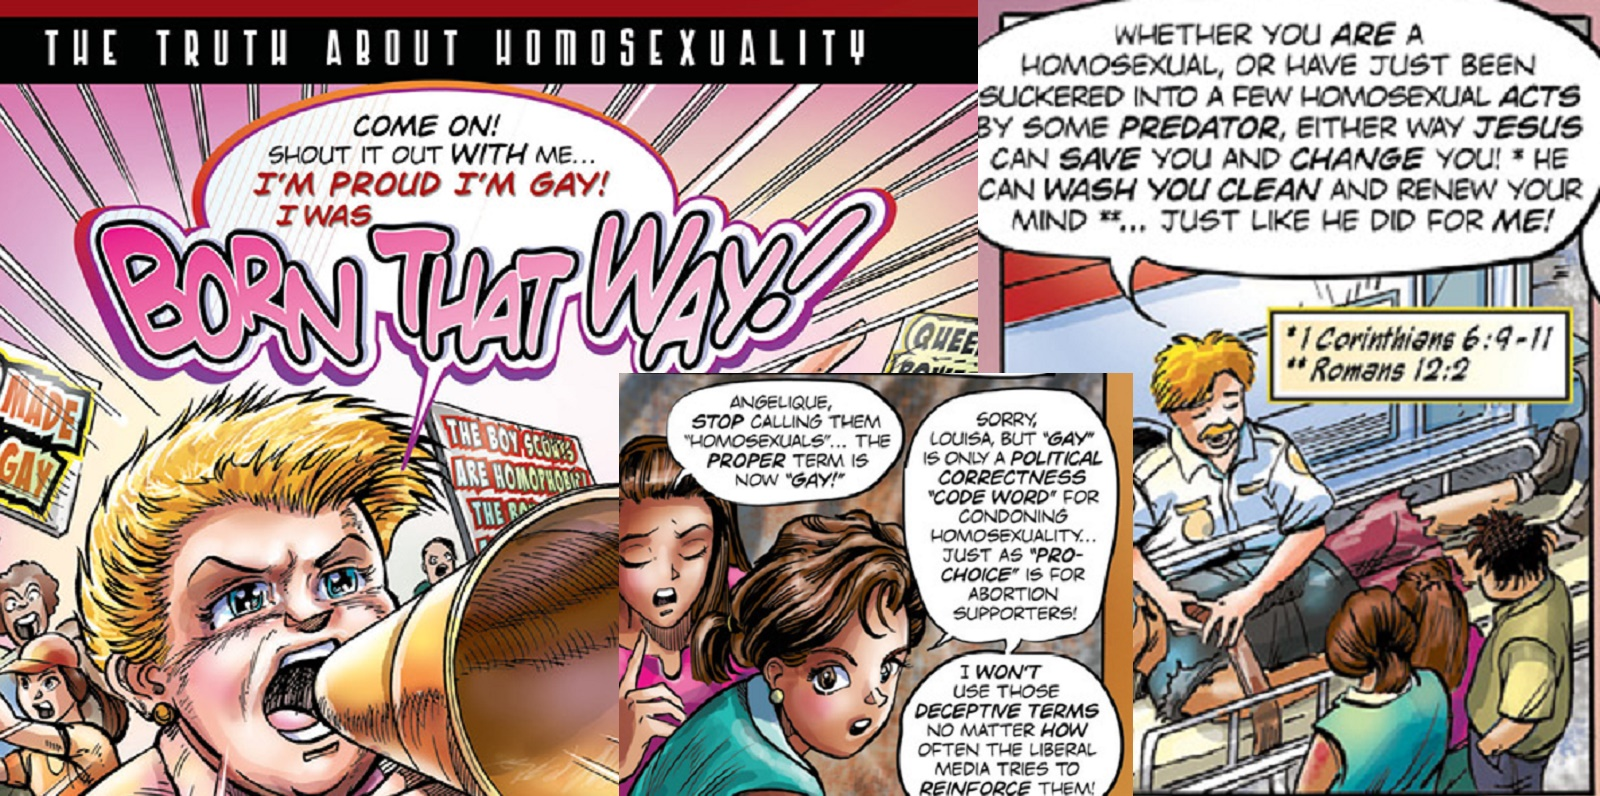 Christian Groups Are Handing Out These Creepy Gay Cure Comics To Children